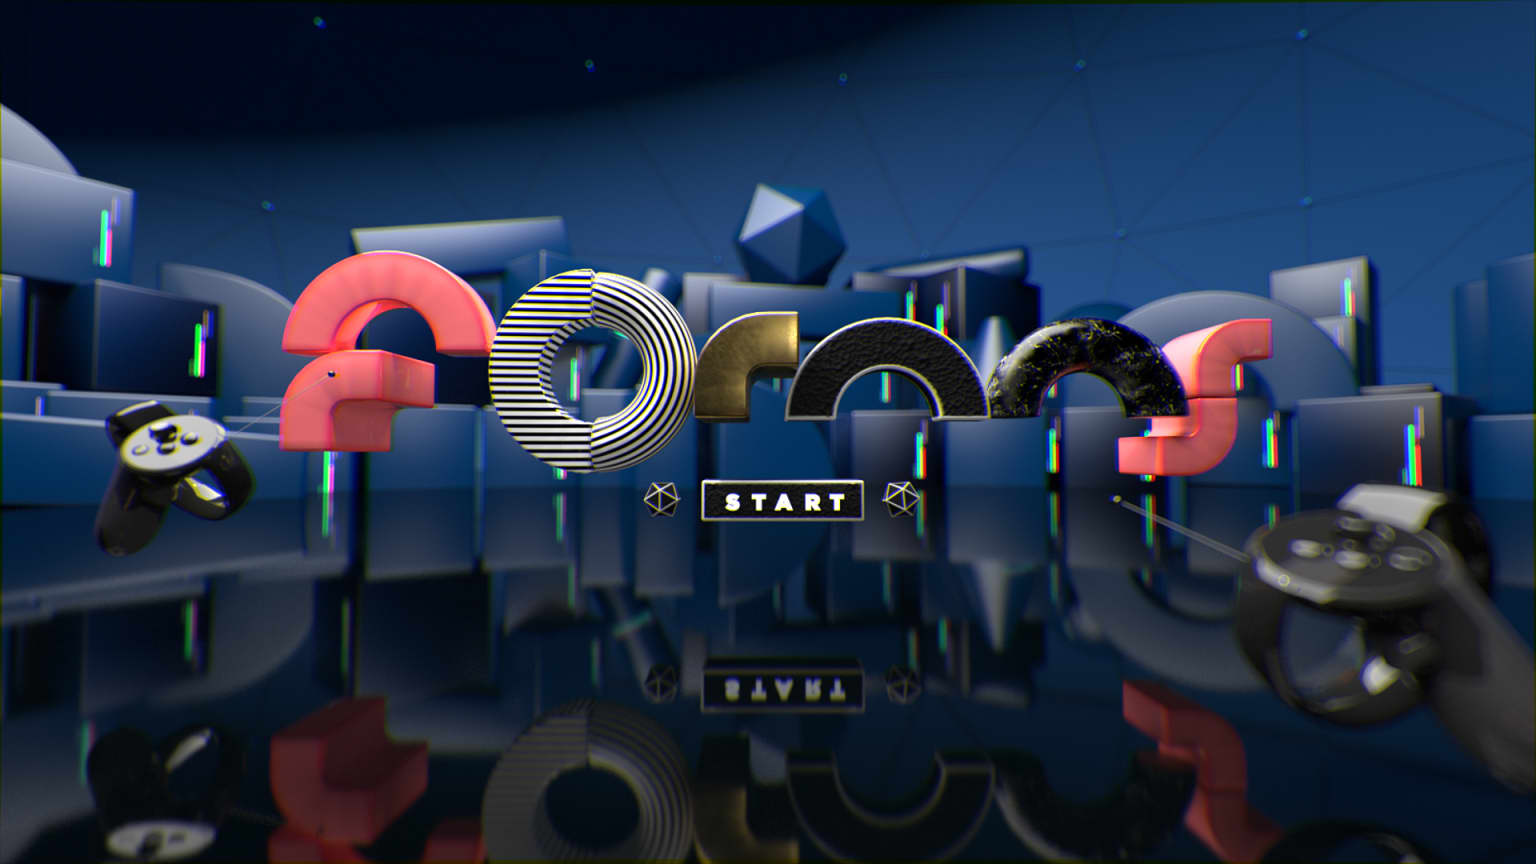 FORMS VR